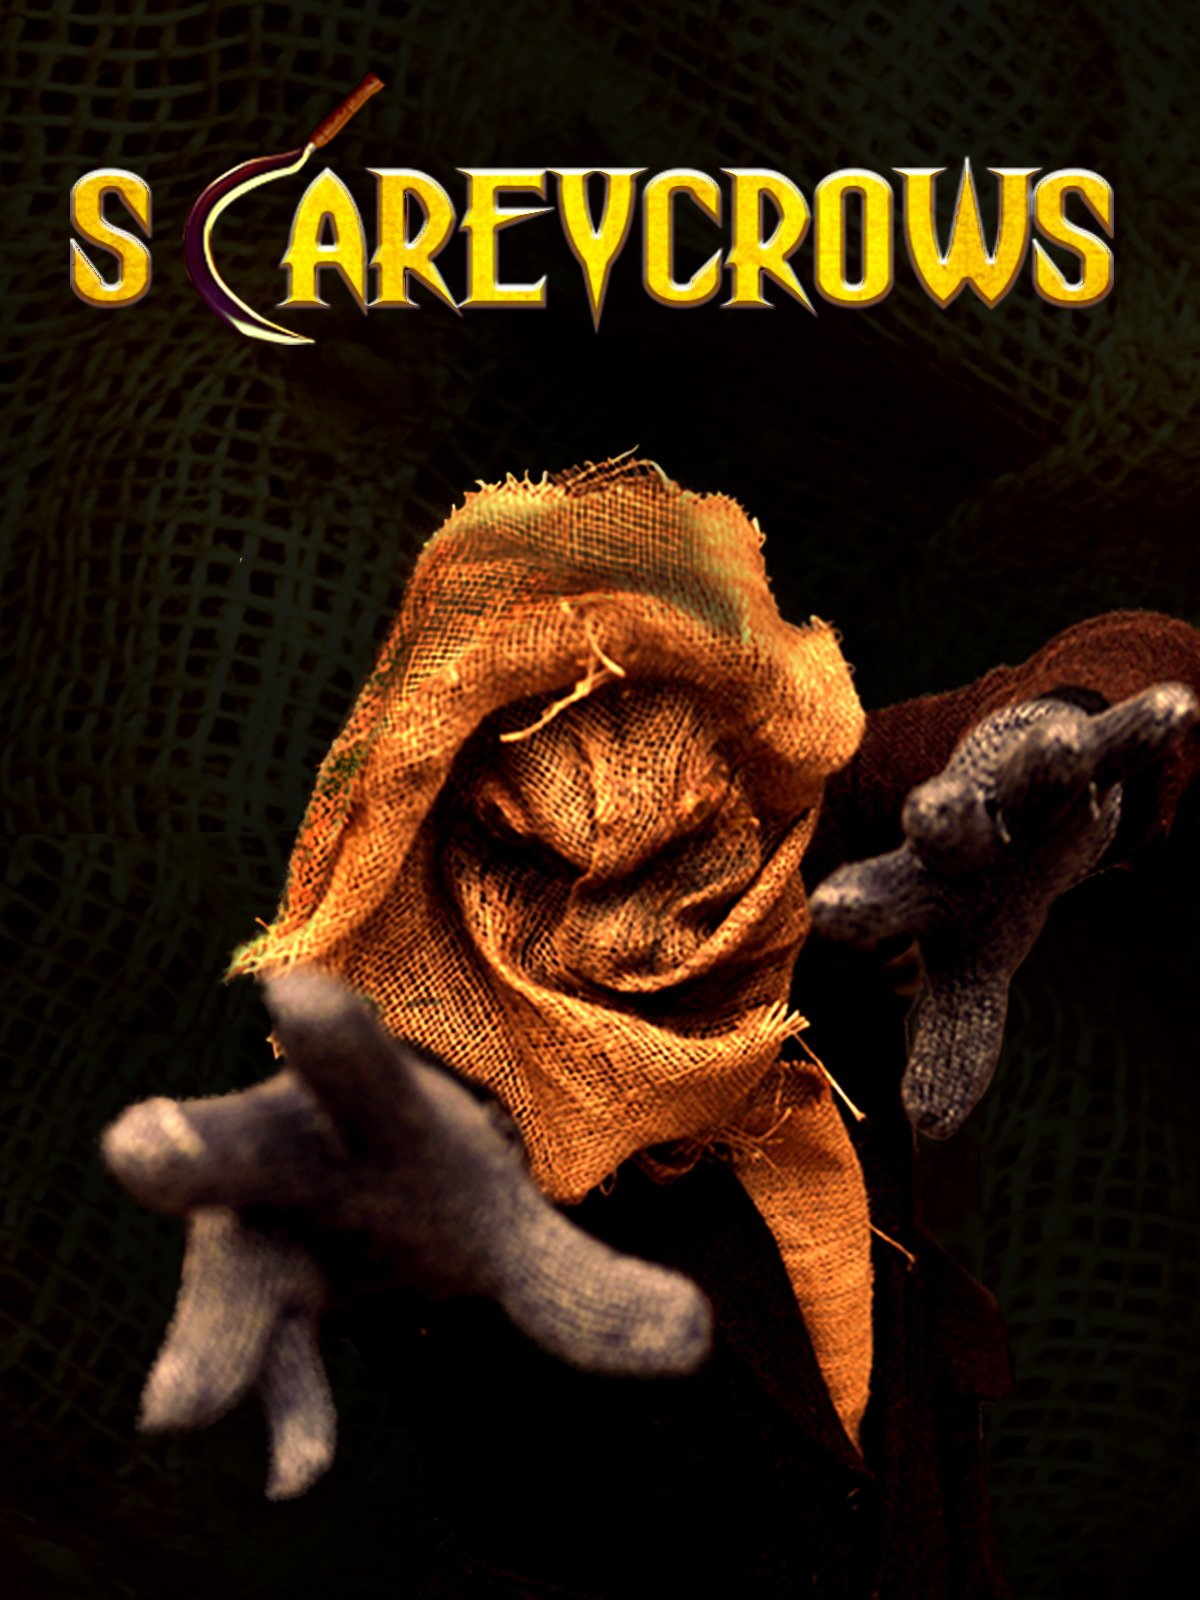 Scareycrows